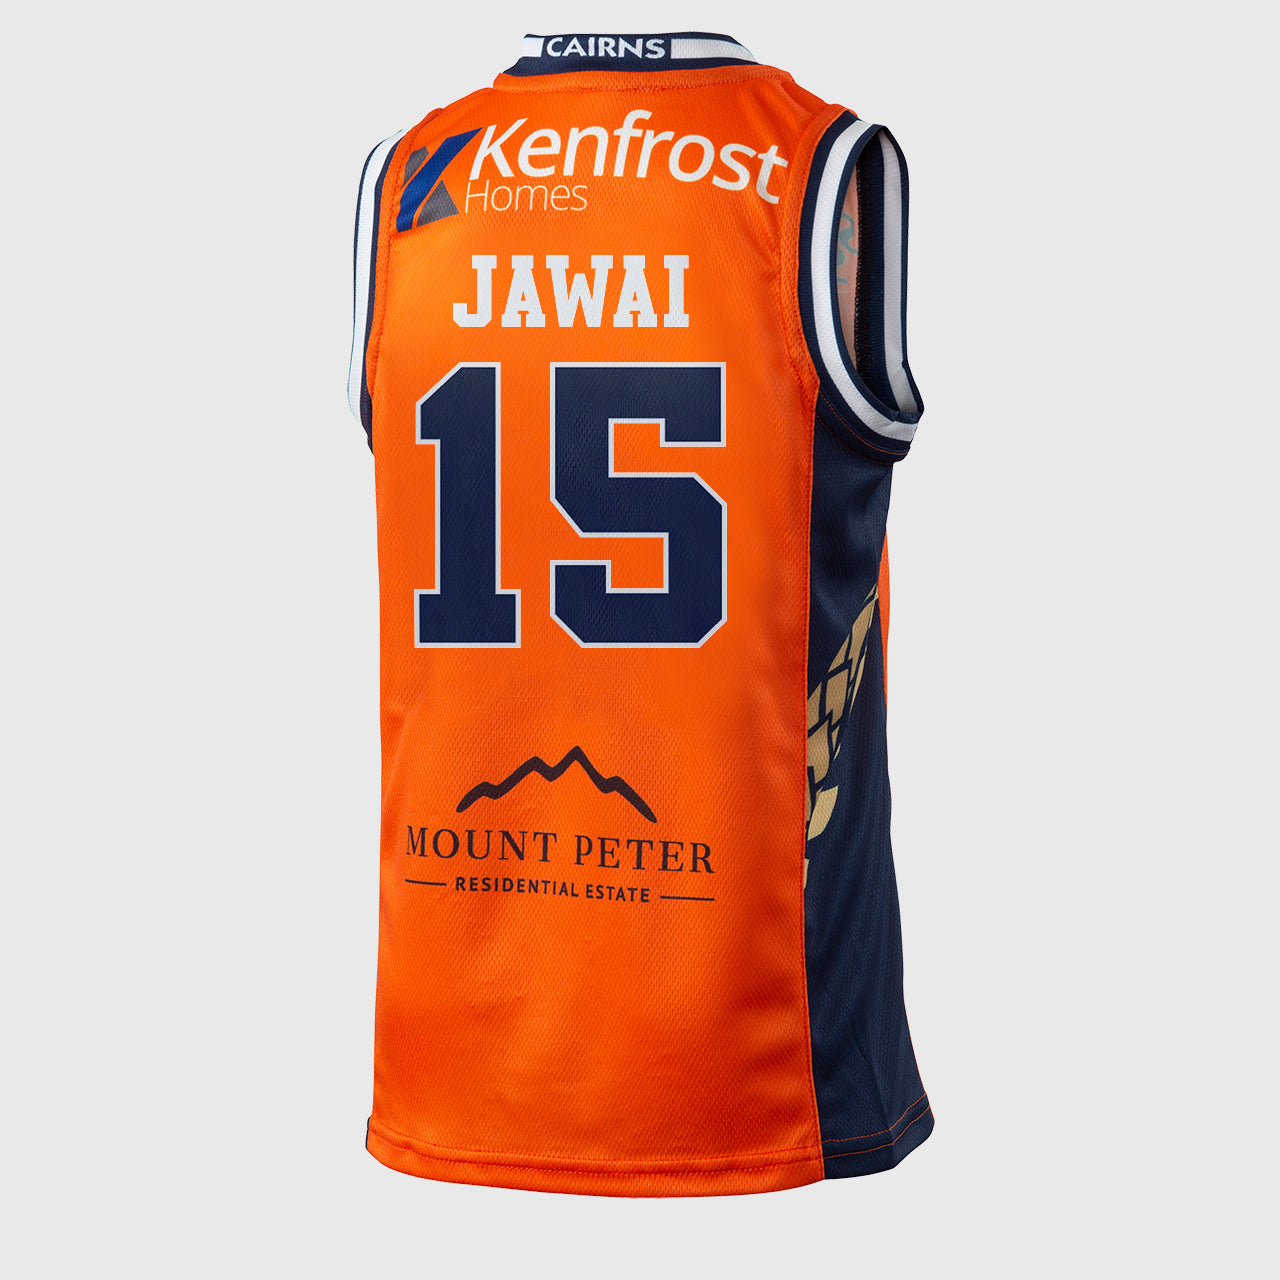 Cairns Taipans 18/19 Youth Authentic Jersey - Nate Jawai